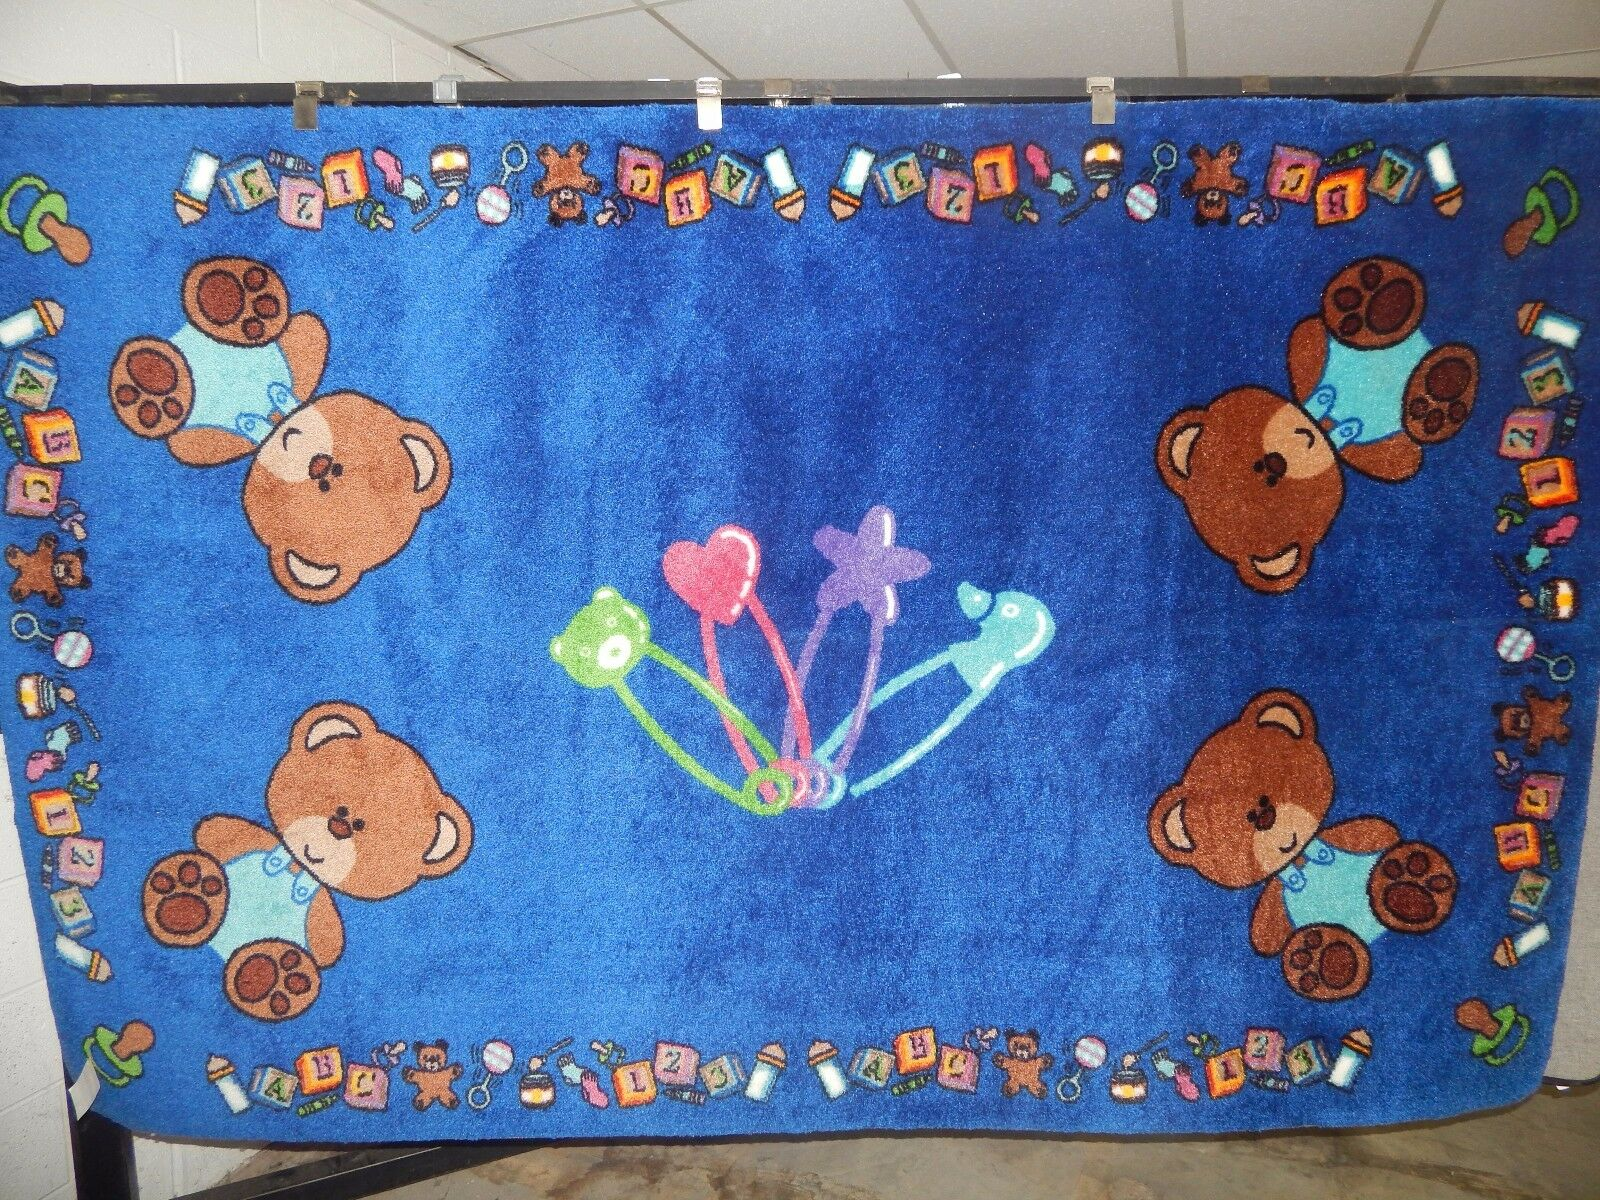 Educational Tapis pour les écoles-Day Care-Kids Room 8' X 12' bébé ours.